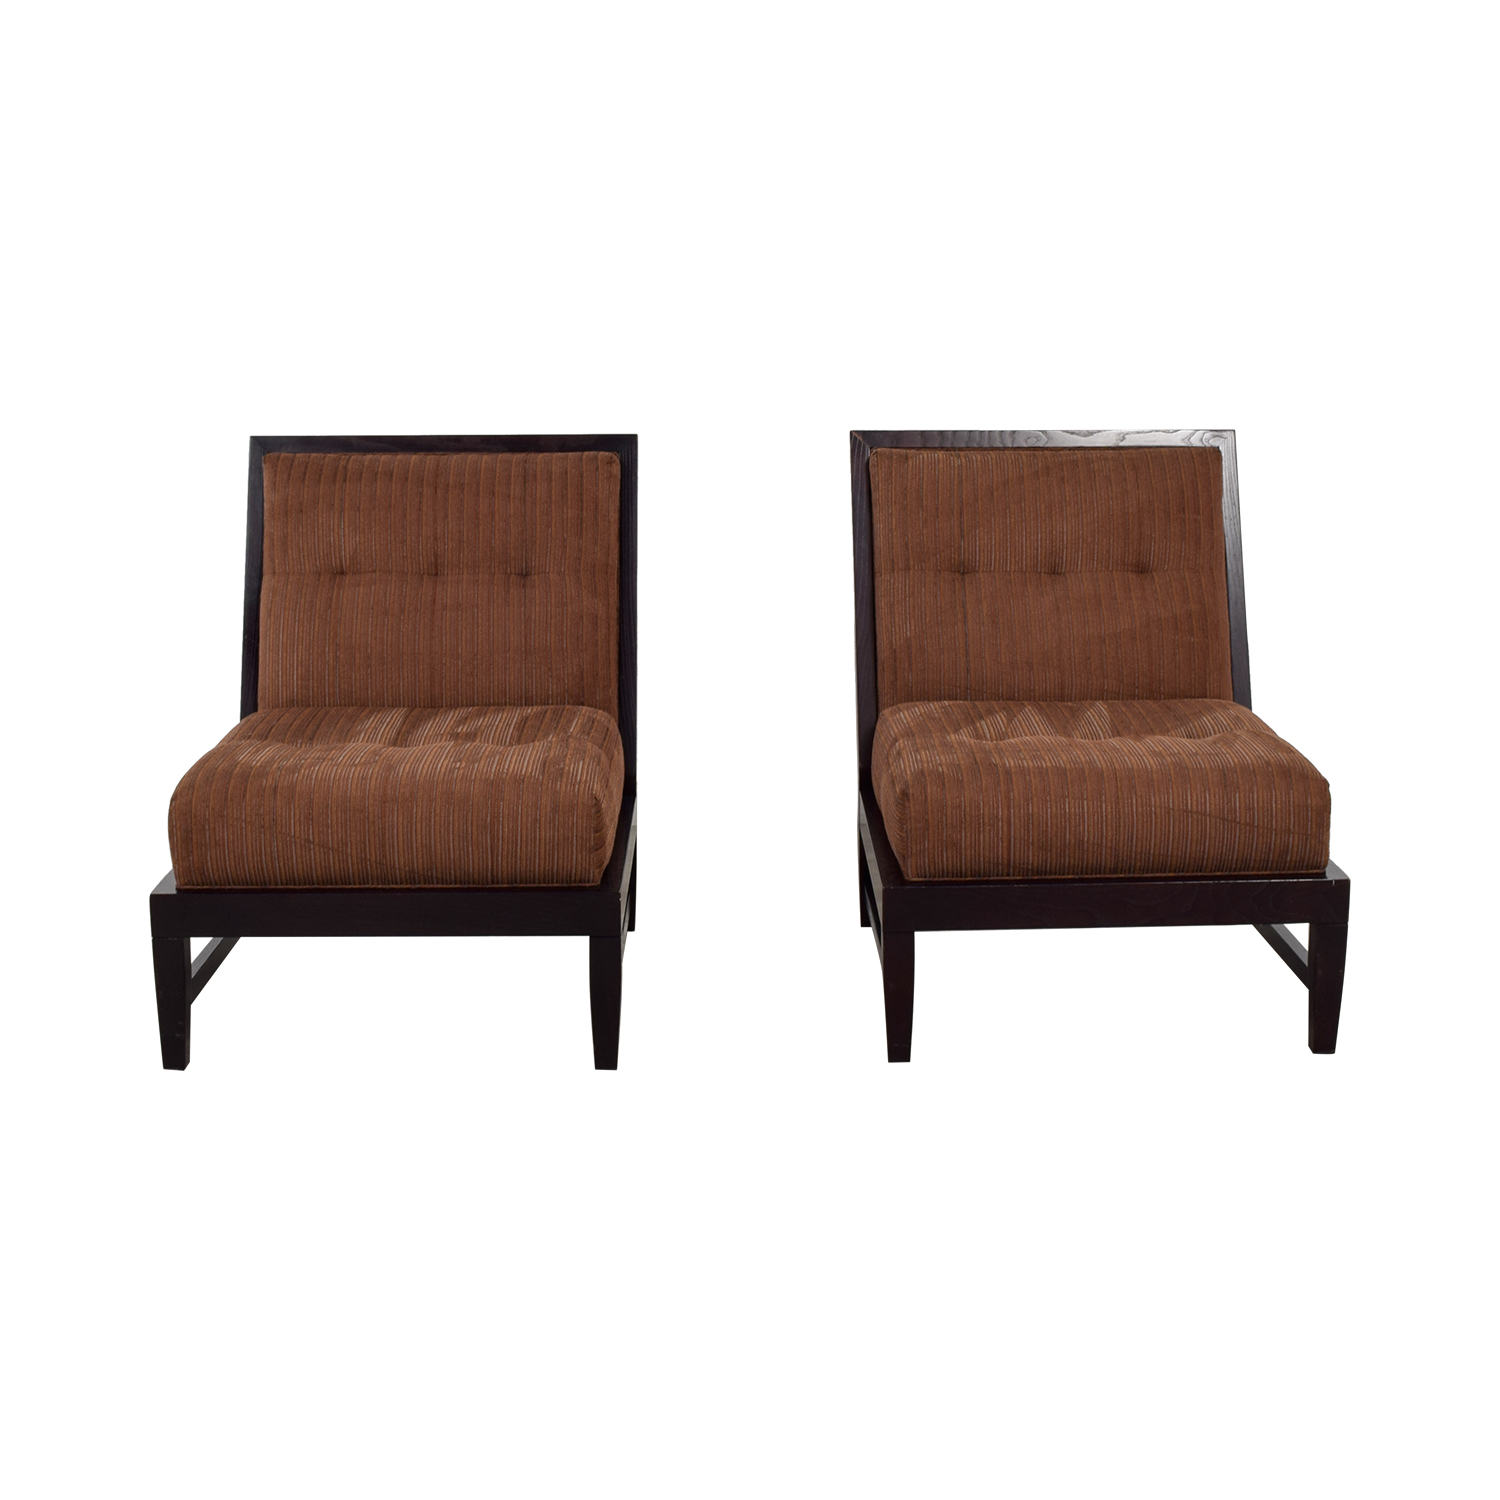 Vanguard Furniture Vanguard Furniture Brown Upholstered Side Chairs for sale